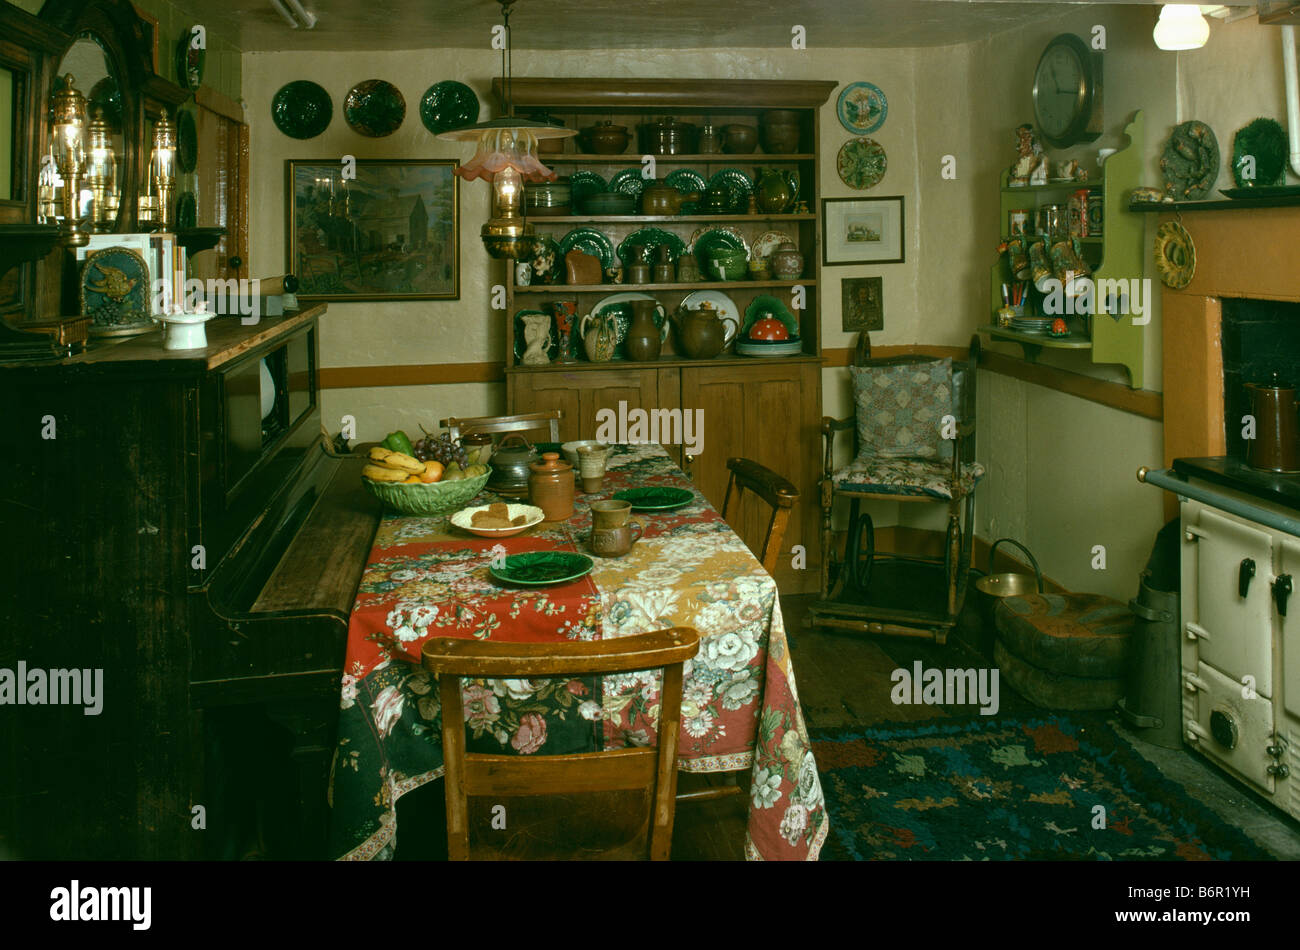 Piano and table with floral cloth in dark oldfashioned kitchen